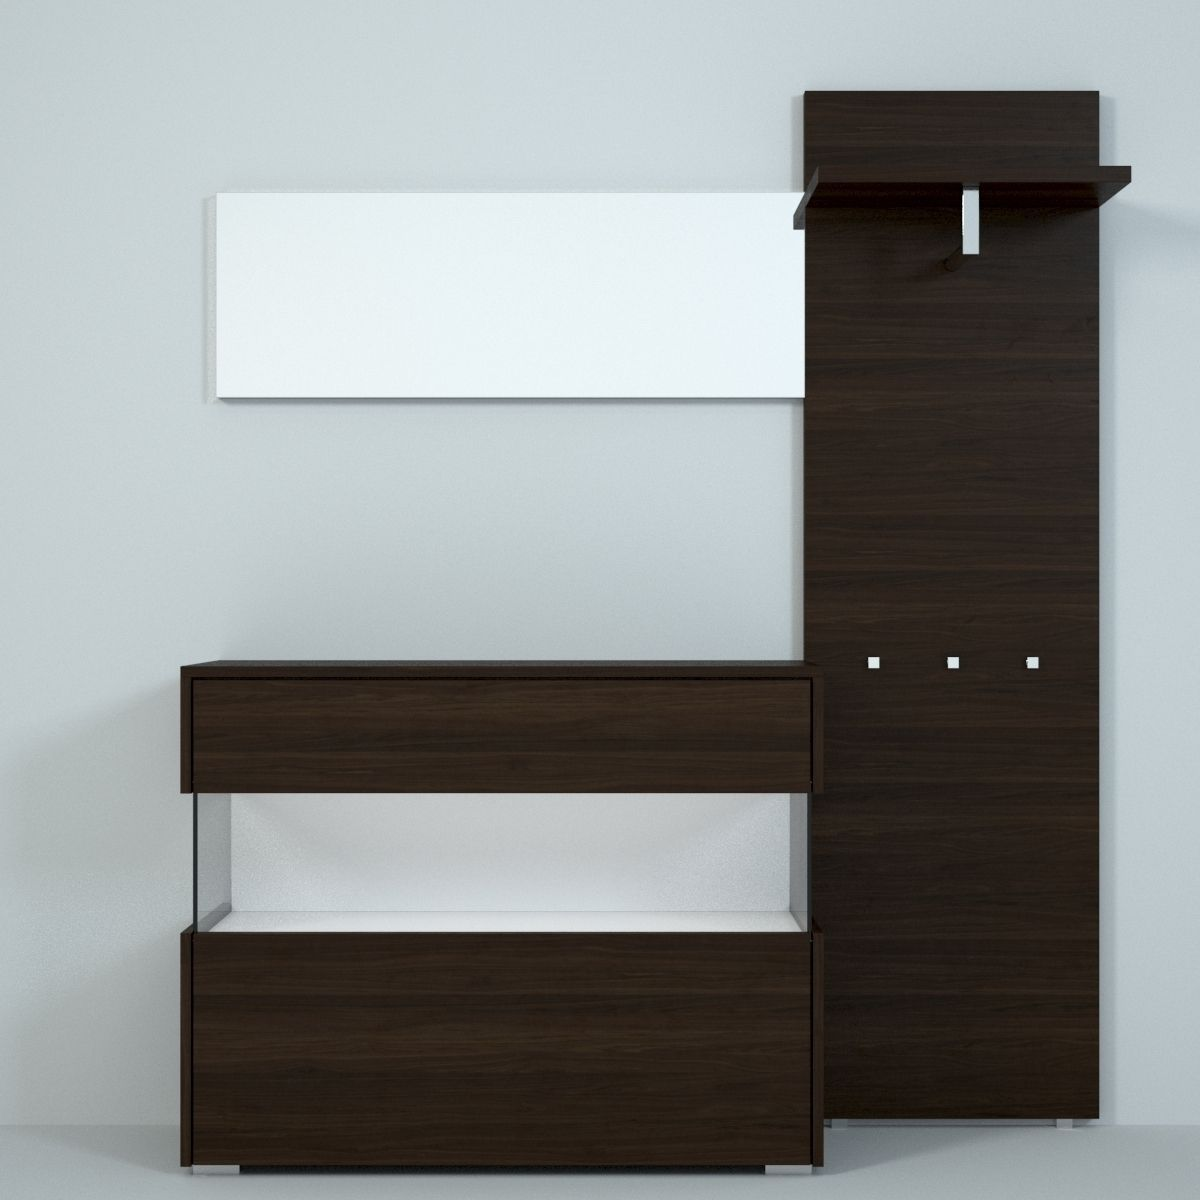 hulsta elea ii hallway 3d model max. Black Bedroom Furniture Sets. Home Design Ideas